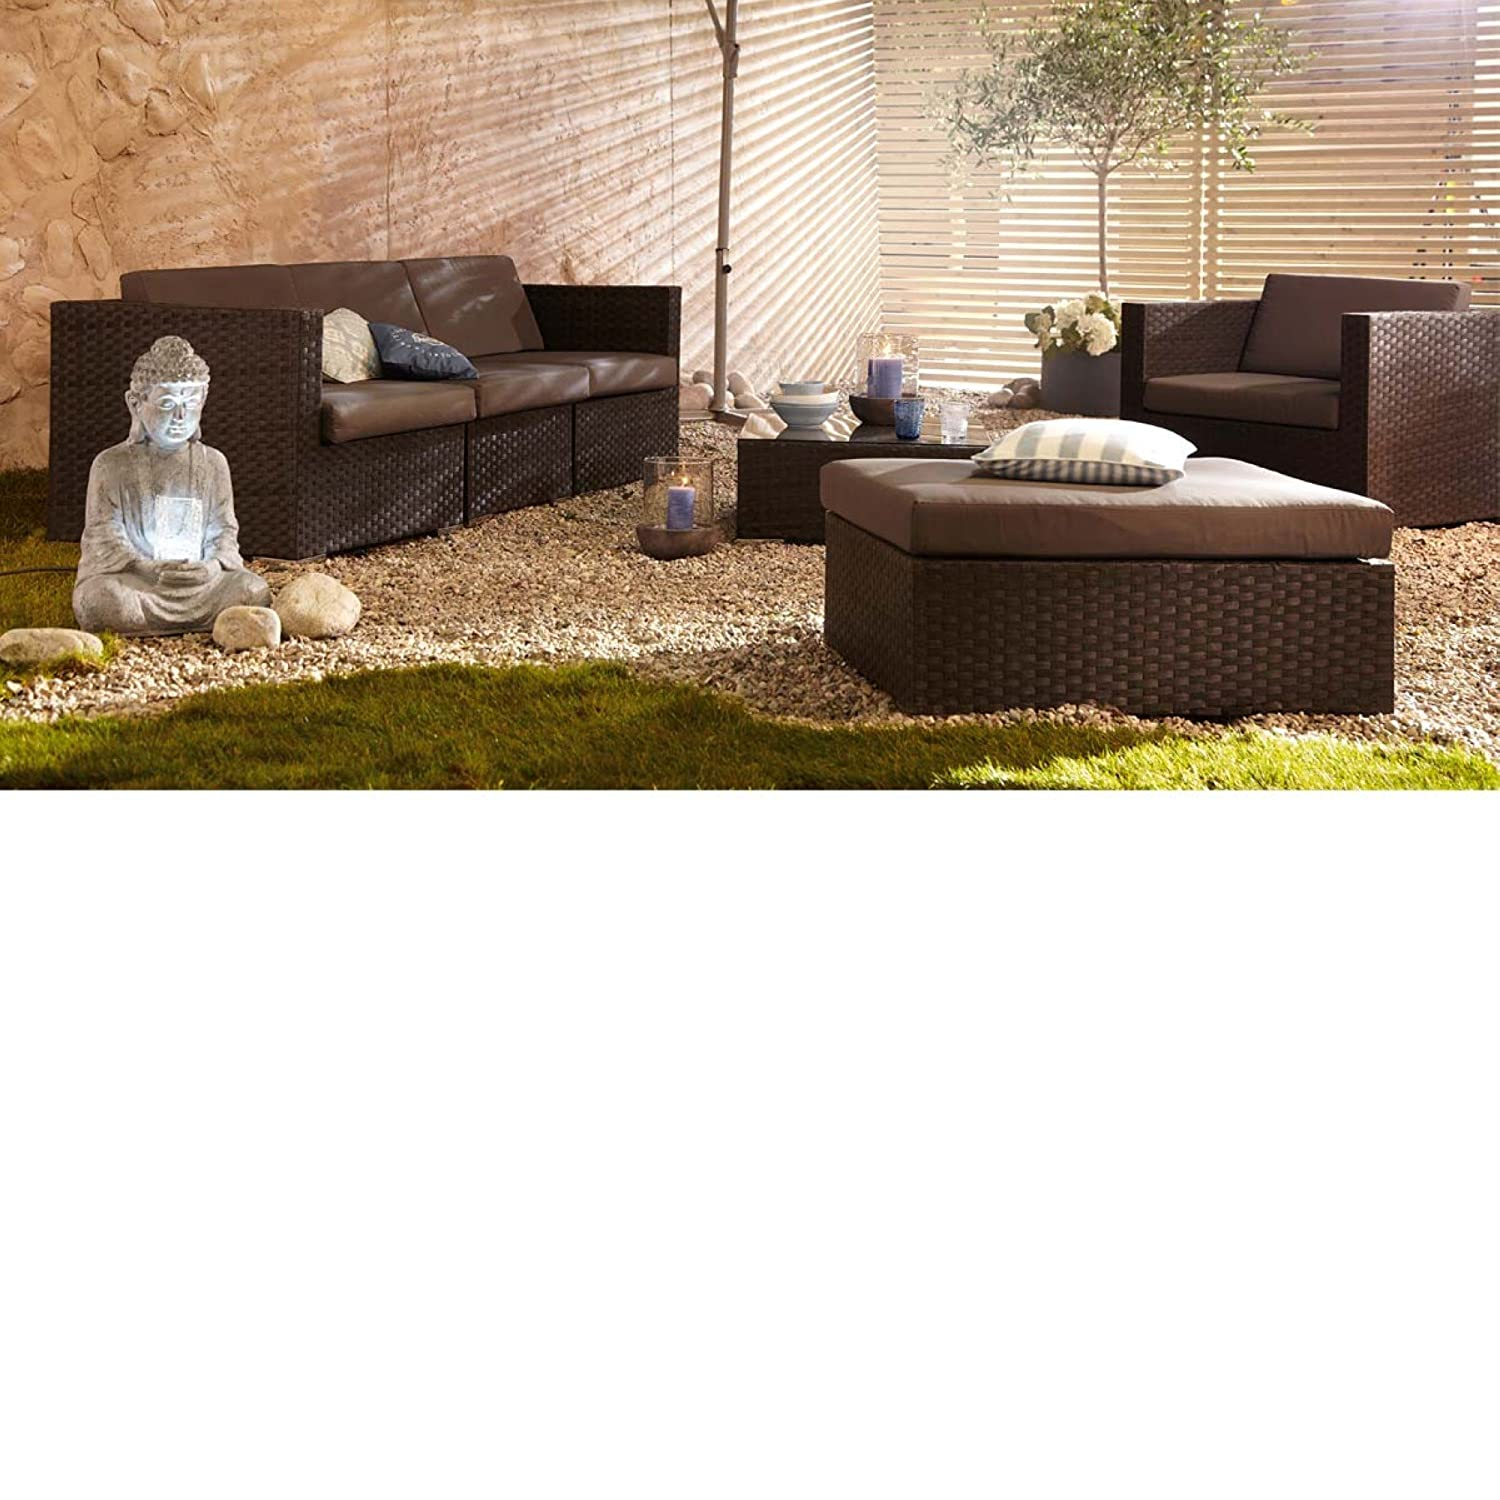 gartenm bel set aus kunstrattan mit auflagen 6 teilig braun g nstig kaufen. Black Bedroom Furniture Sets. Home Design Ideas